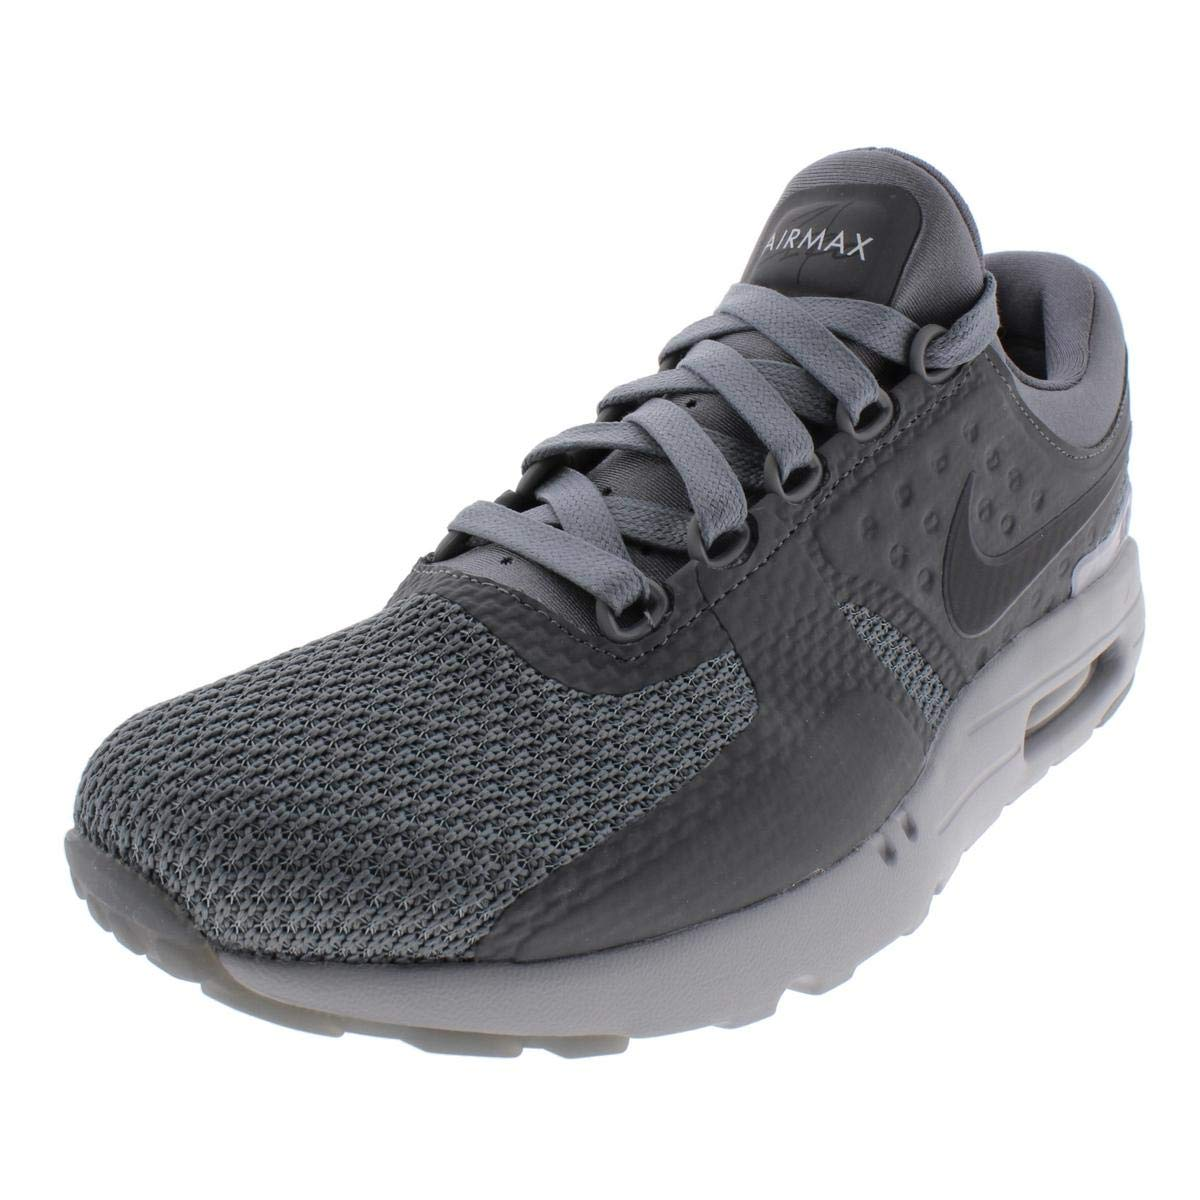 low priced b1f05 8af90 Nike Men's Air Max Zero QS (9.5) Cool Grey